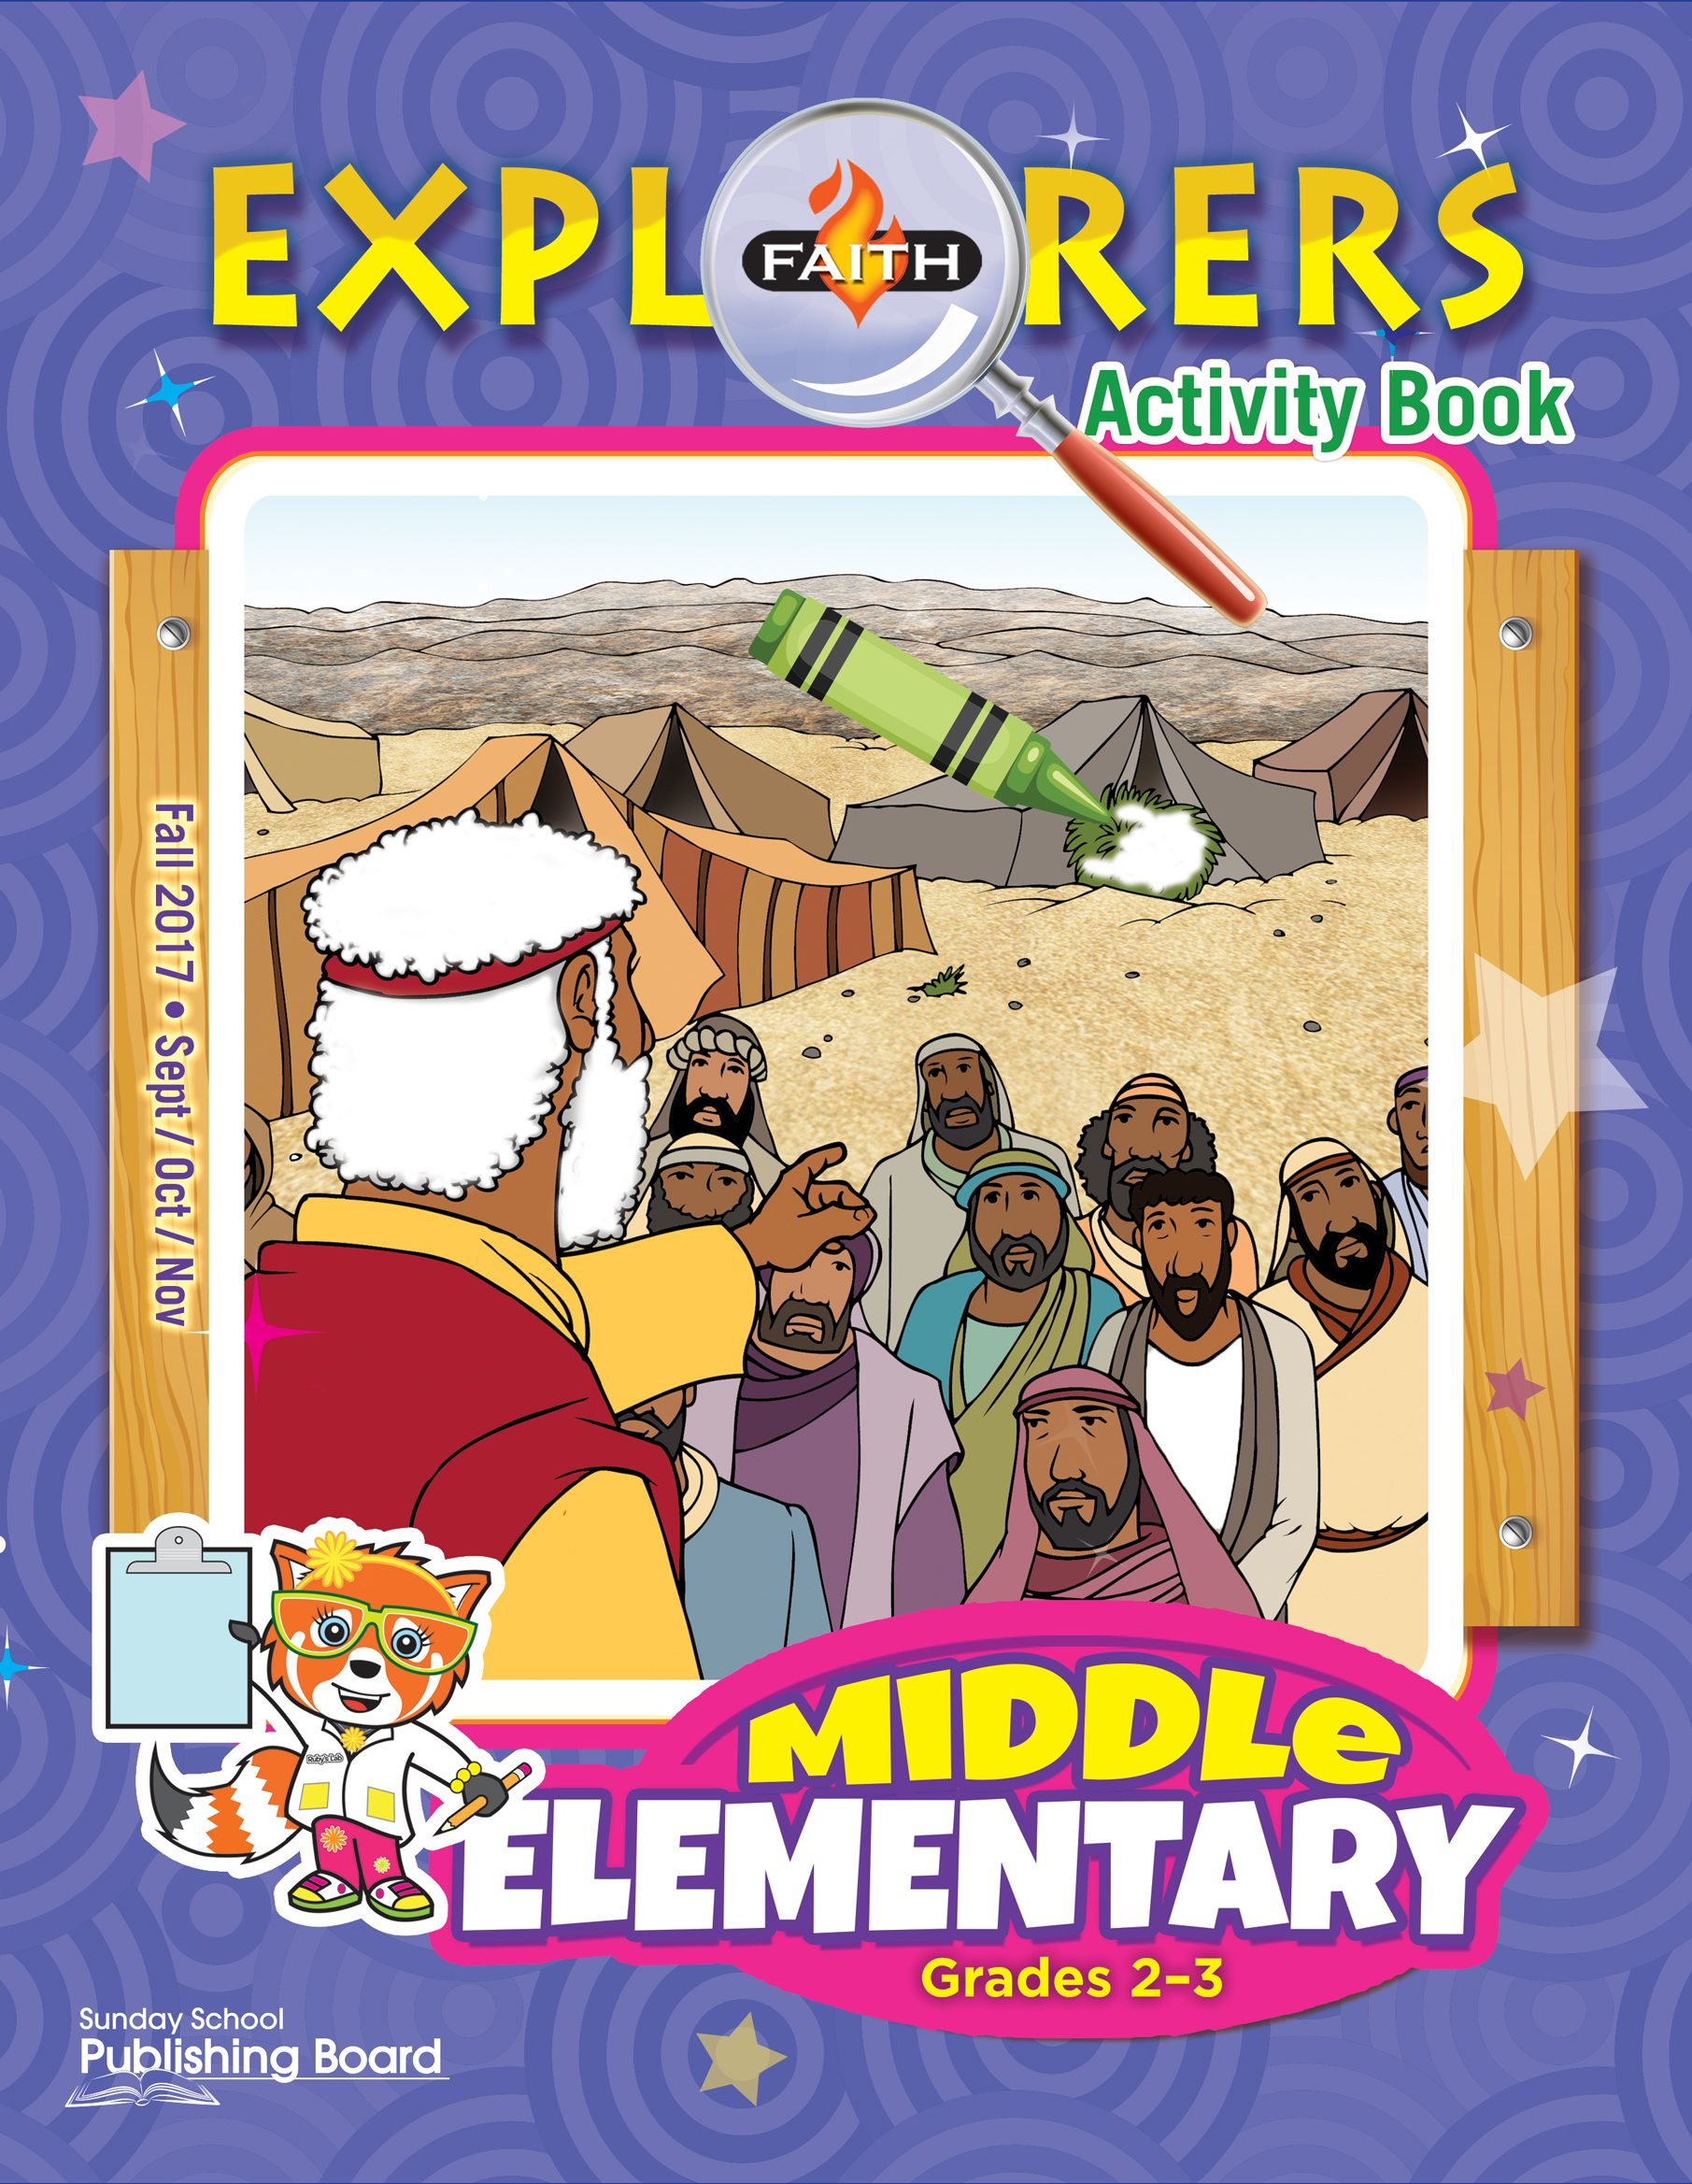 Faith Explorers Middle Elementary Activity Book (Grades 2-3)